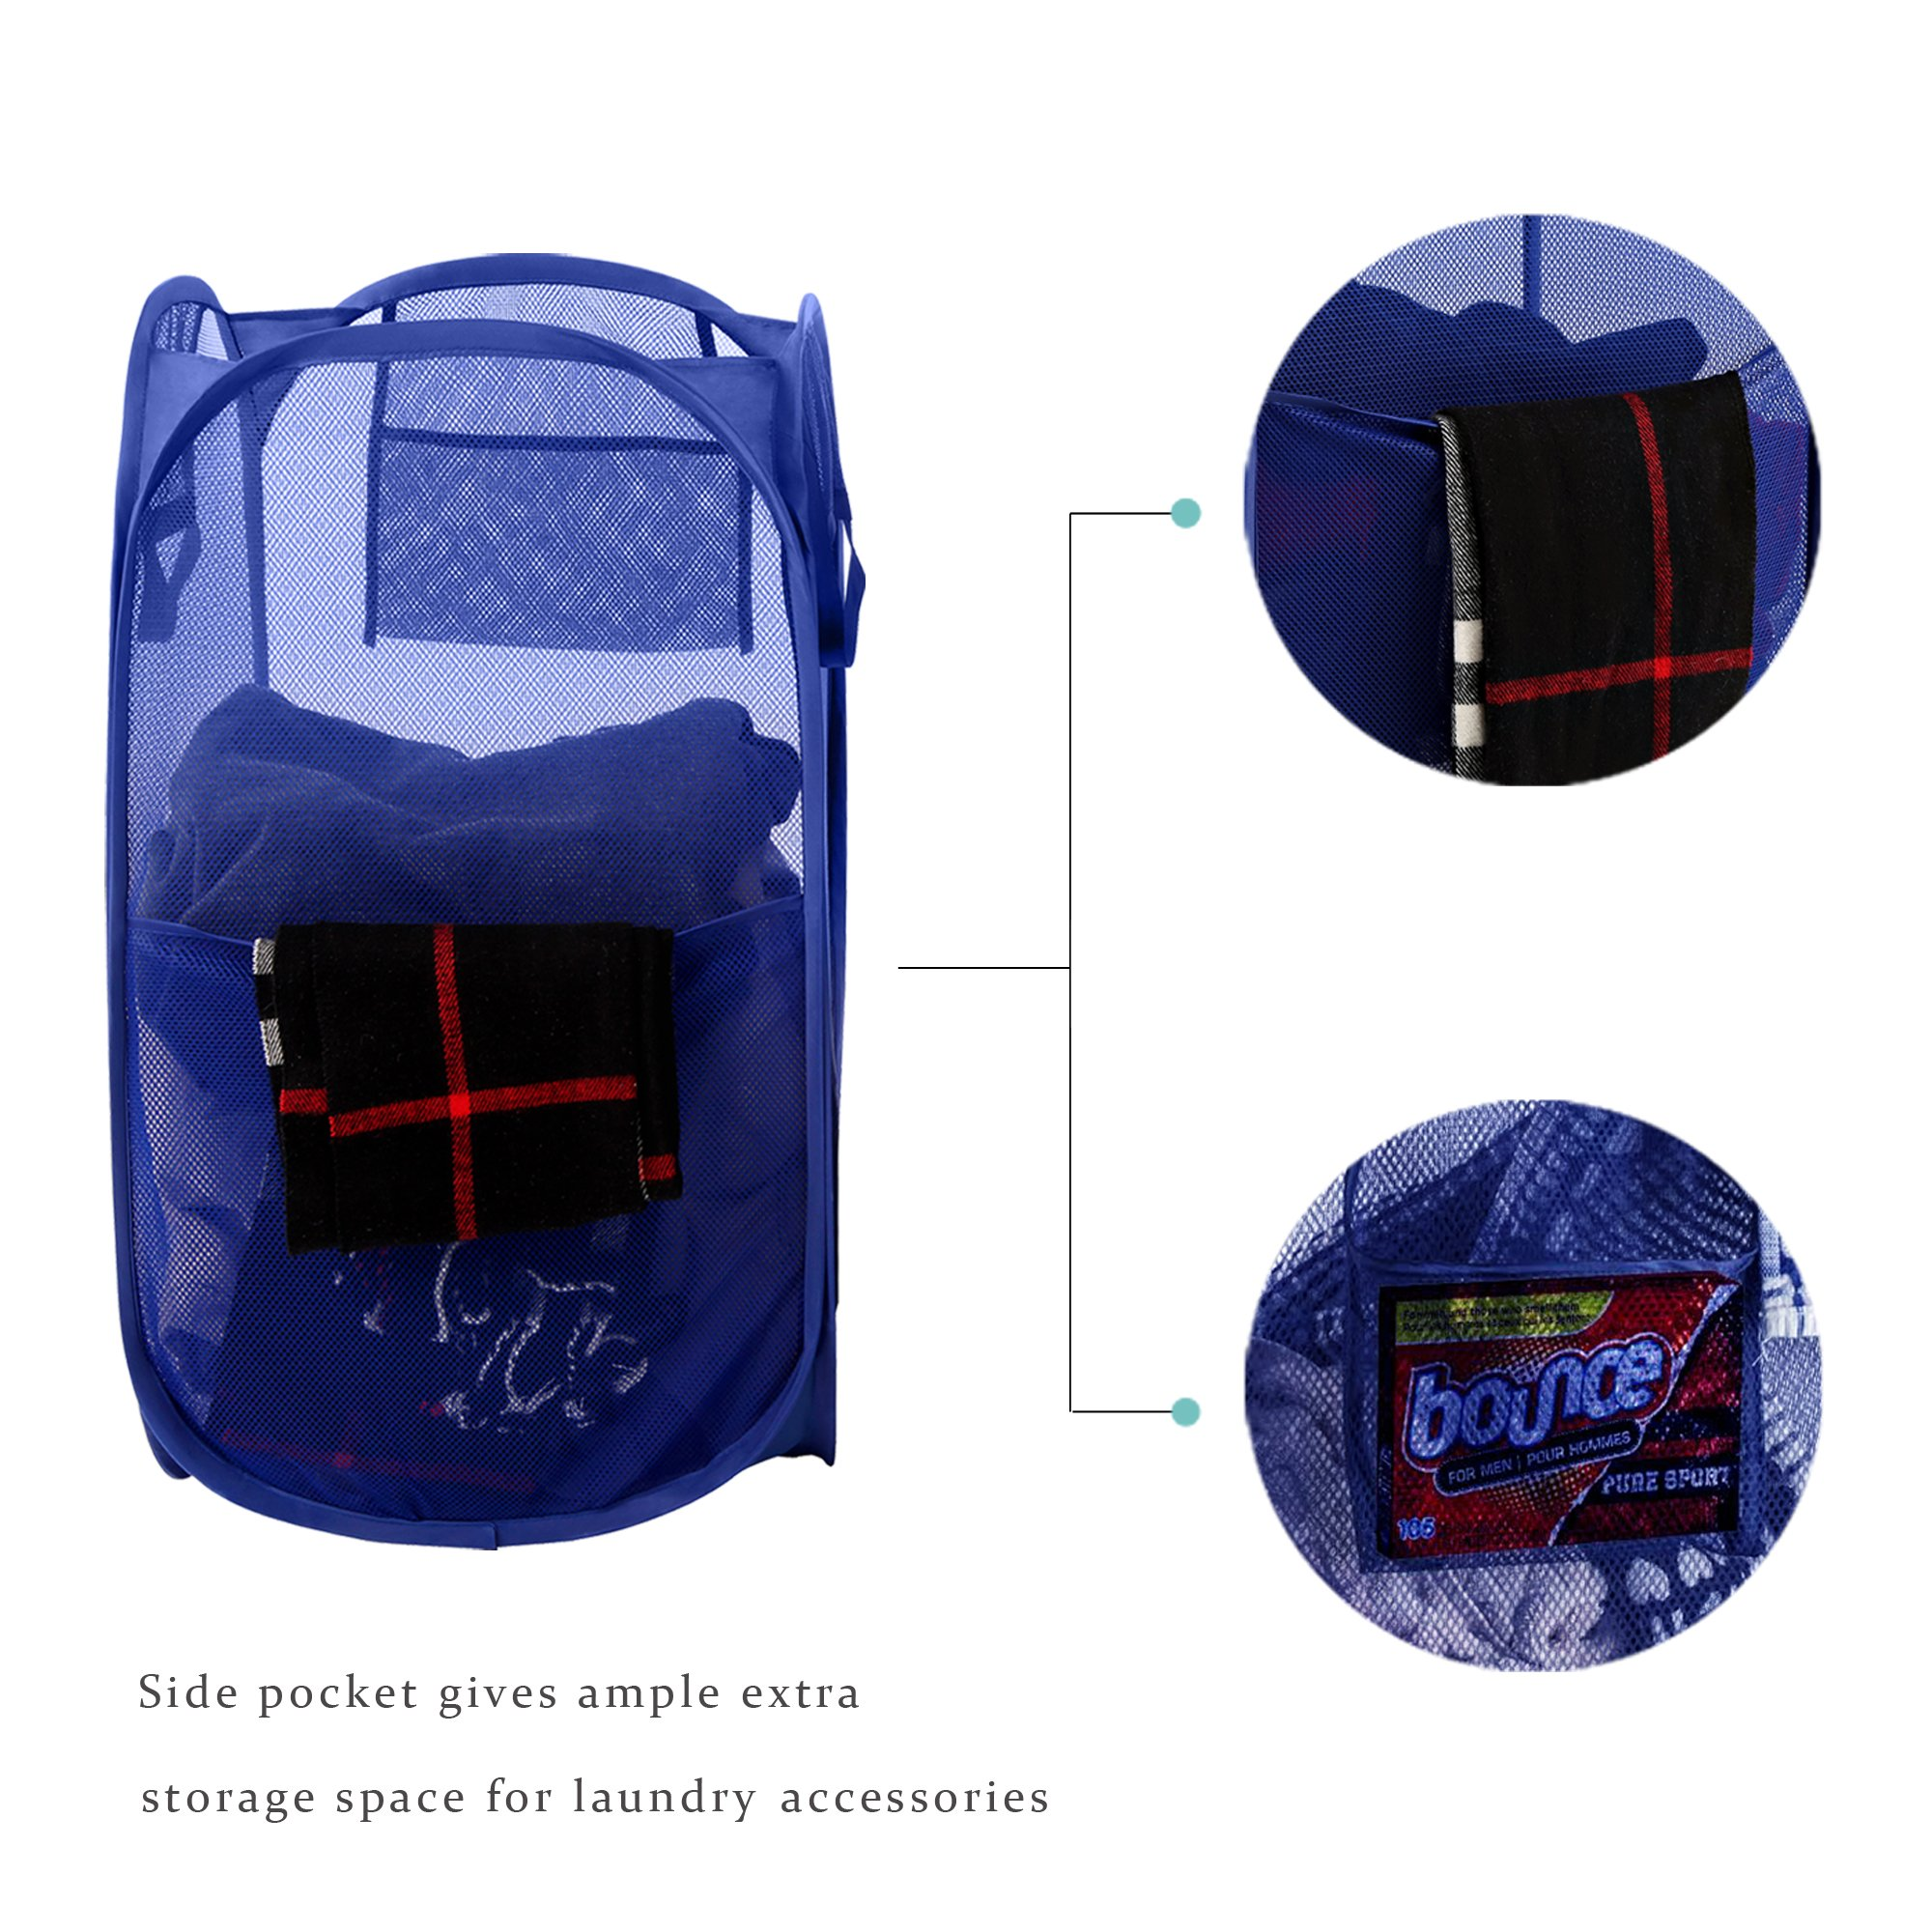 Bagail 2-Pack Pop-up Mesh Laundry Hamper with Reinforced Carry Handles,Foldable Collapsible Laundry Basket with Side Pocket by BAGAIL (Image #3)